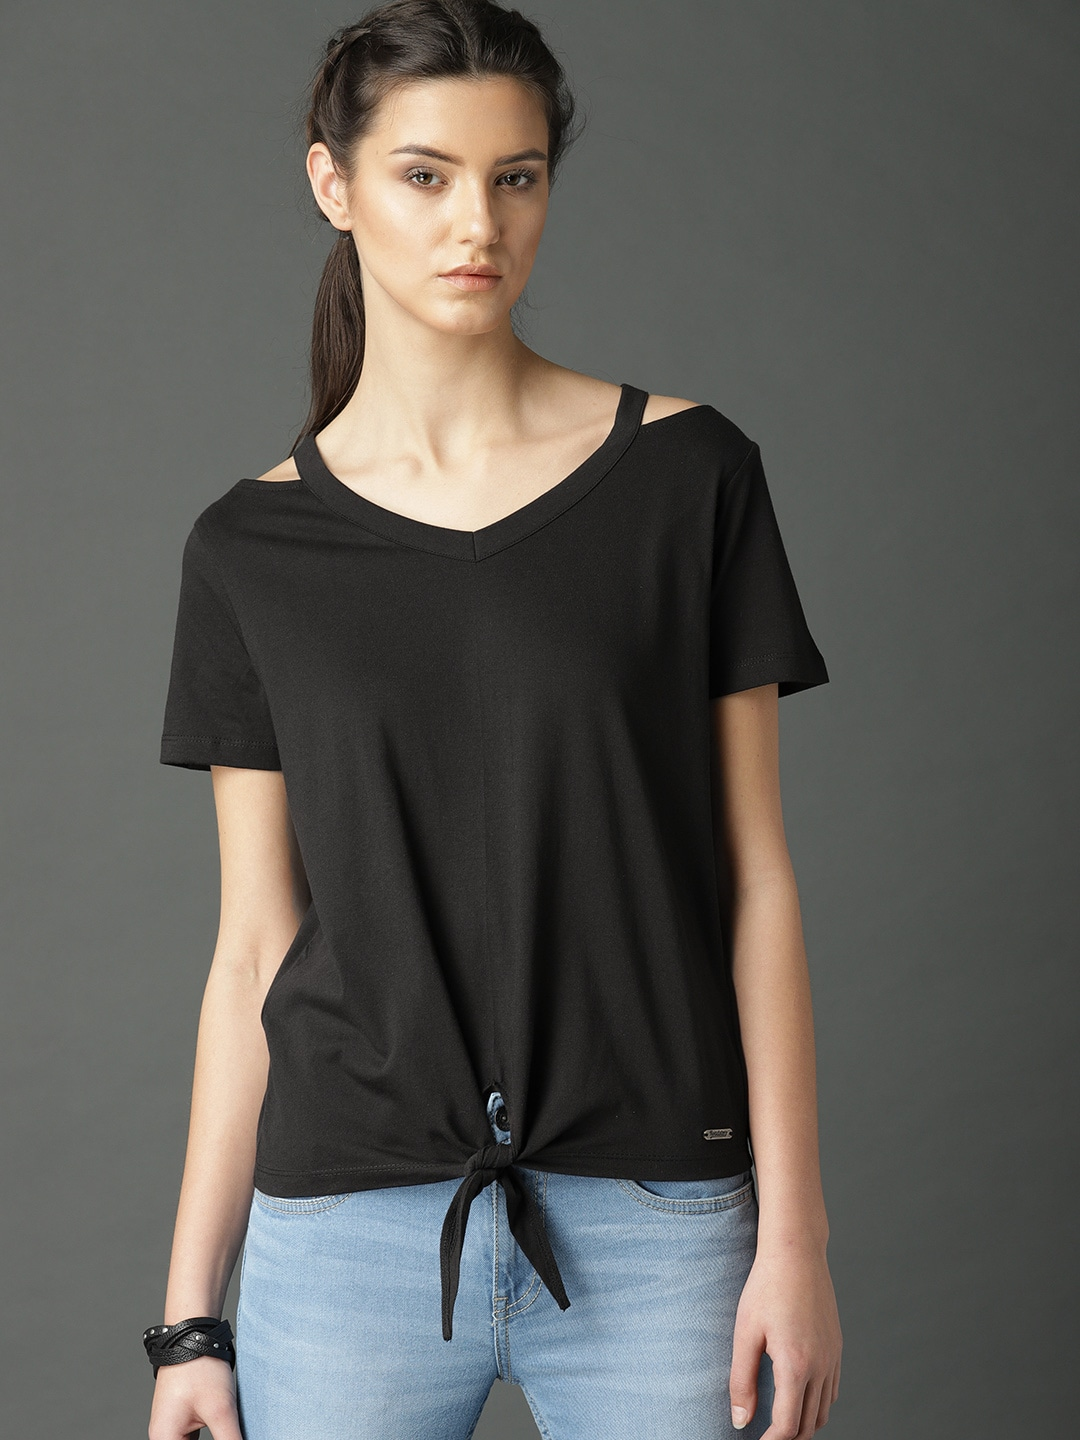 46a79dec692cd1 Cold Shoulder Tops - Buy Cold Shoulder Tops for Women Online - Myntra